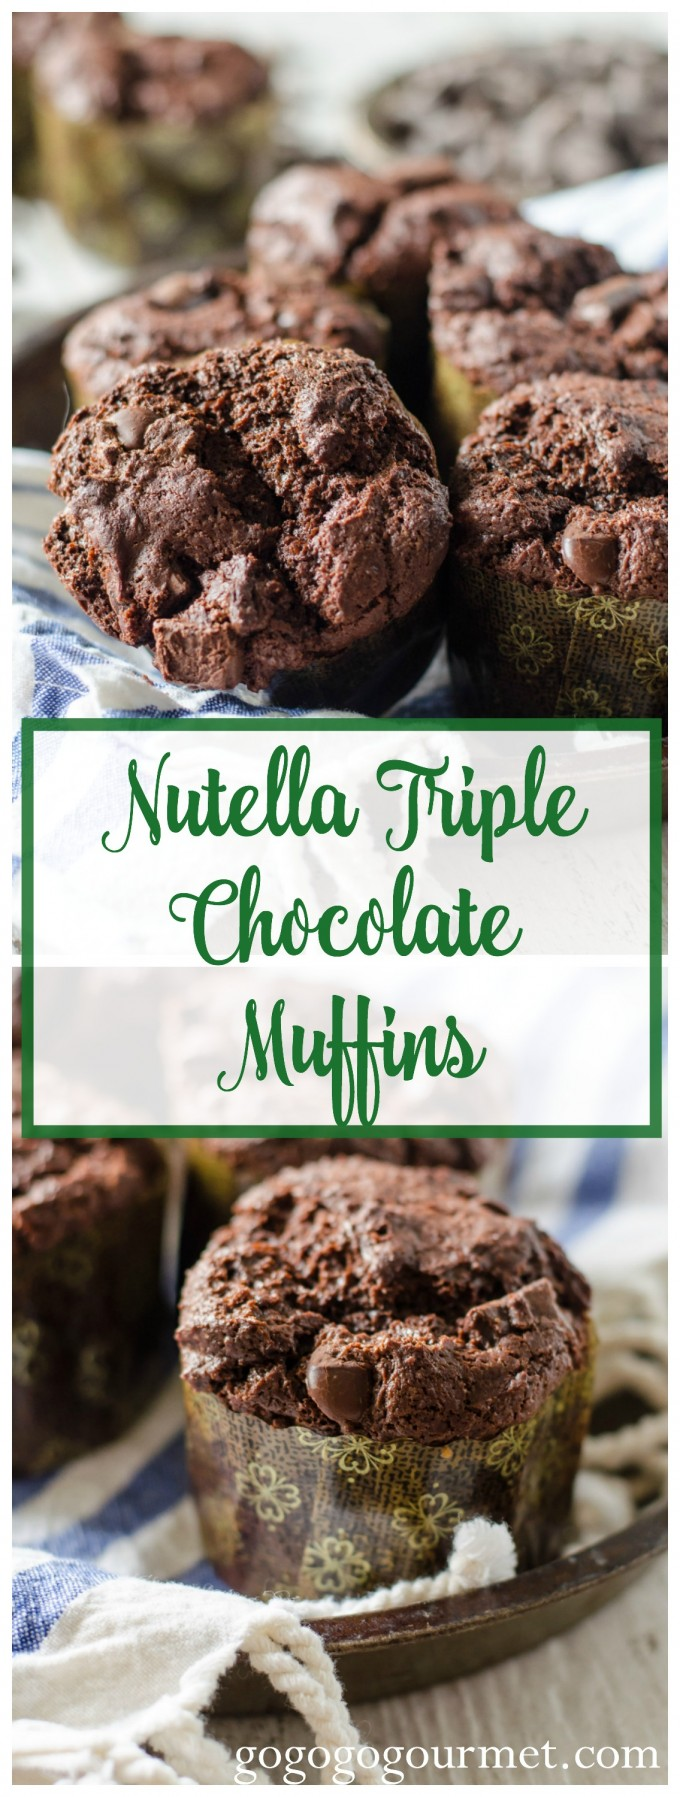 The sweetest way to start your day is with these muffins- you can never have too much chocolate right? Nutella Triple Chocolate Muffins | Go Go Go Gourmet @Go Go Go Gourmet 2d via @gogogogourmet